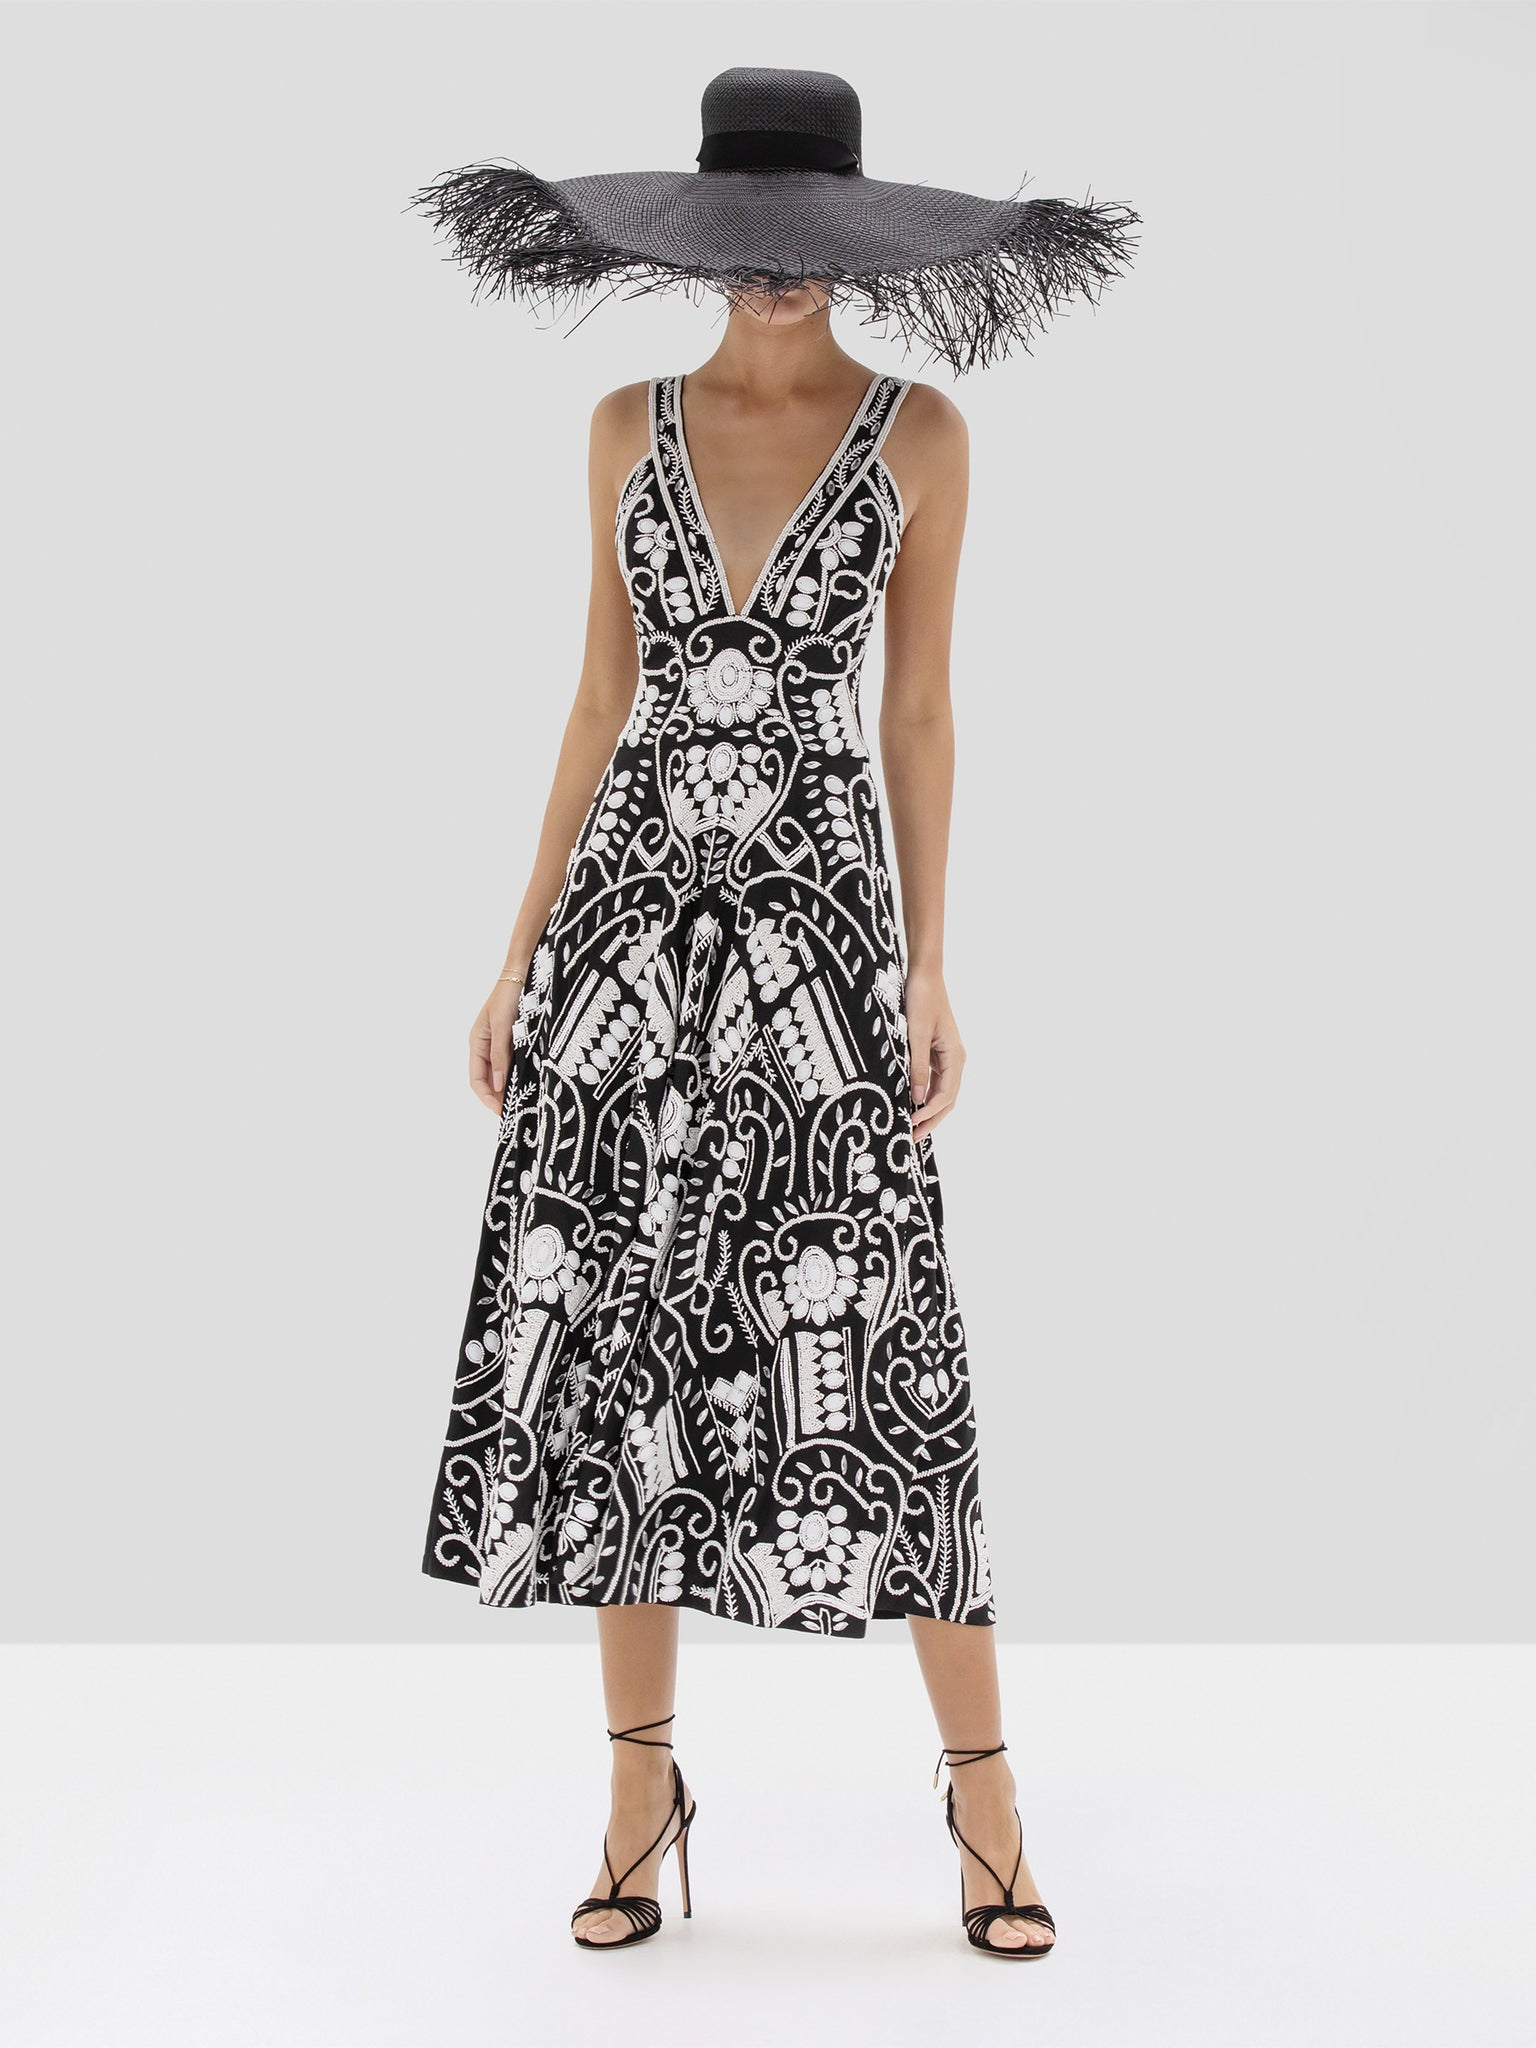 Alexis Brigida Dress in Black and White Embroidery from the Spring Summer 2020 Collection